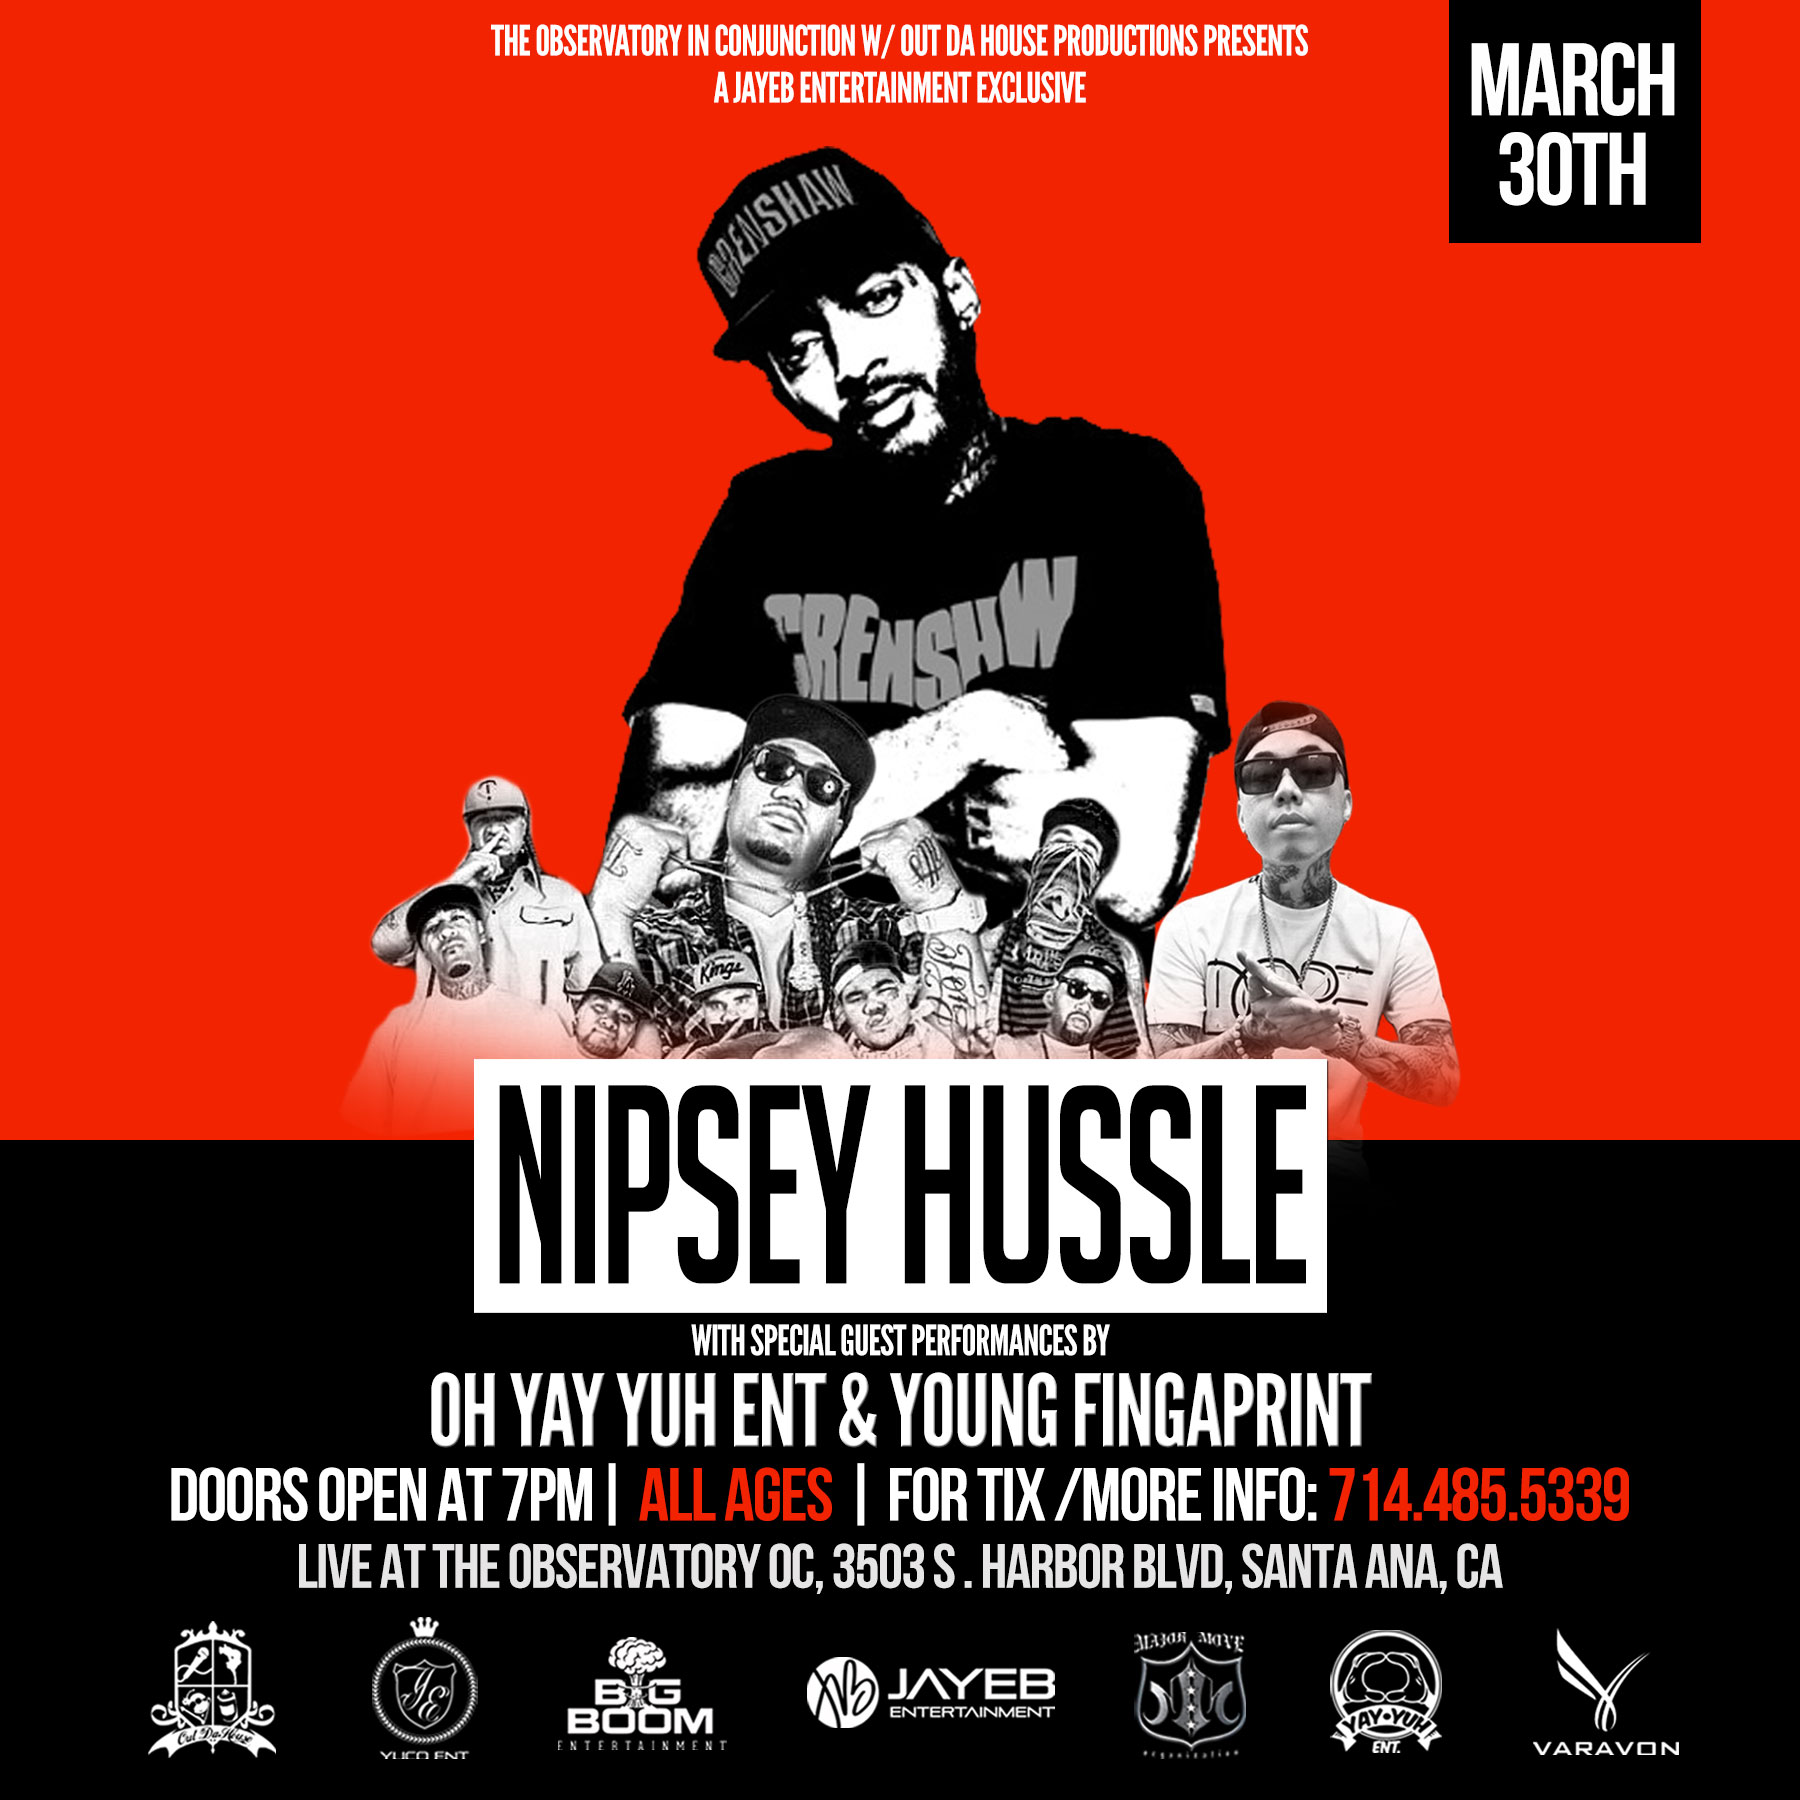 Nipsey Hussle March 30th Flyer